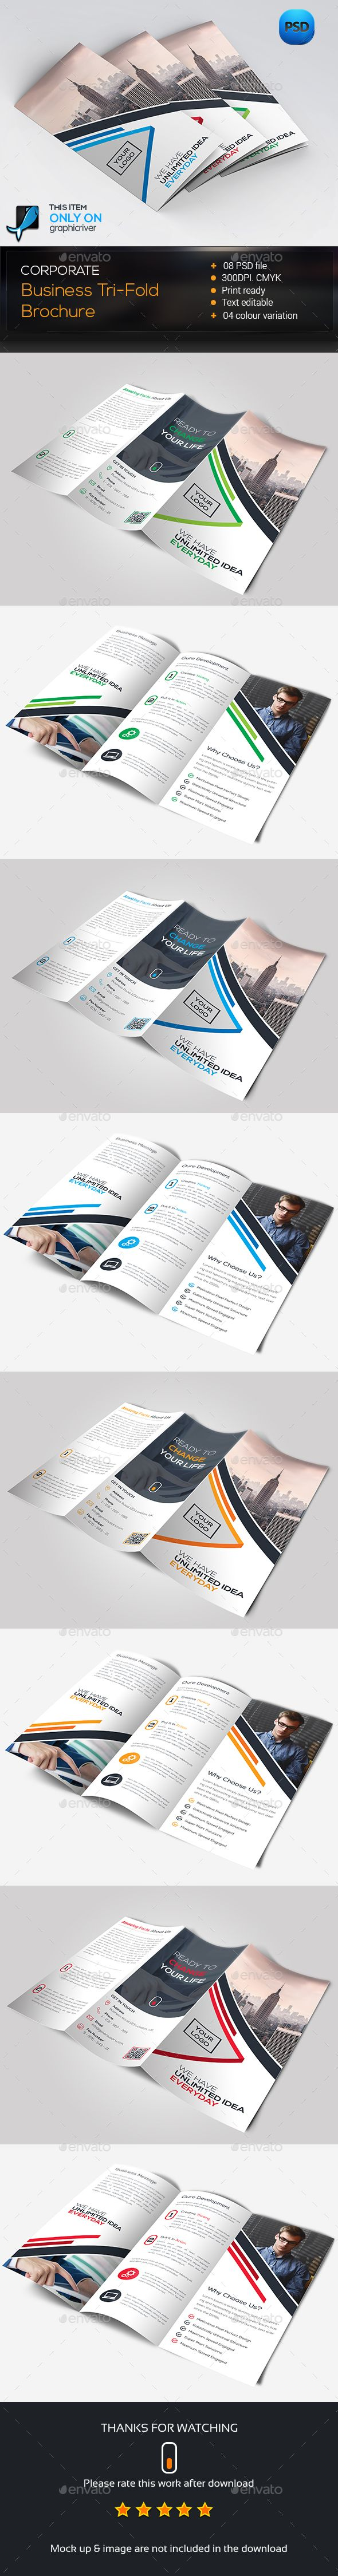 Trifold Brochure Template PSD #design Download: http://graphicriver.net/item/trifold-brochure/14230259?ref=ksioks